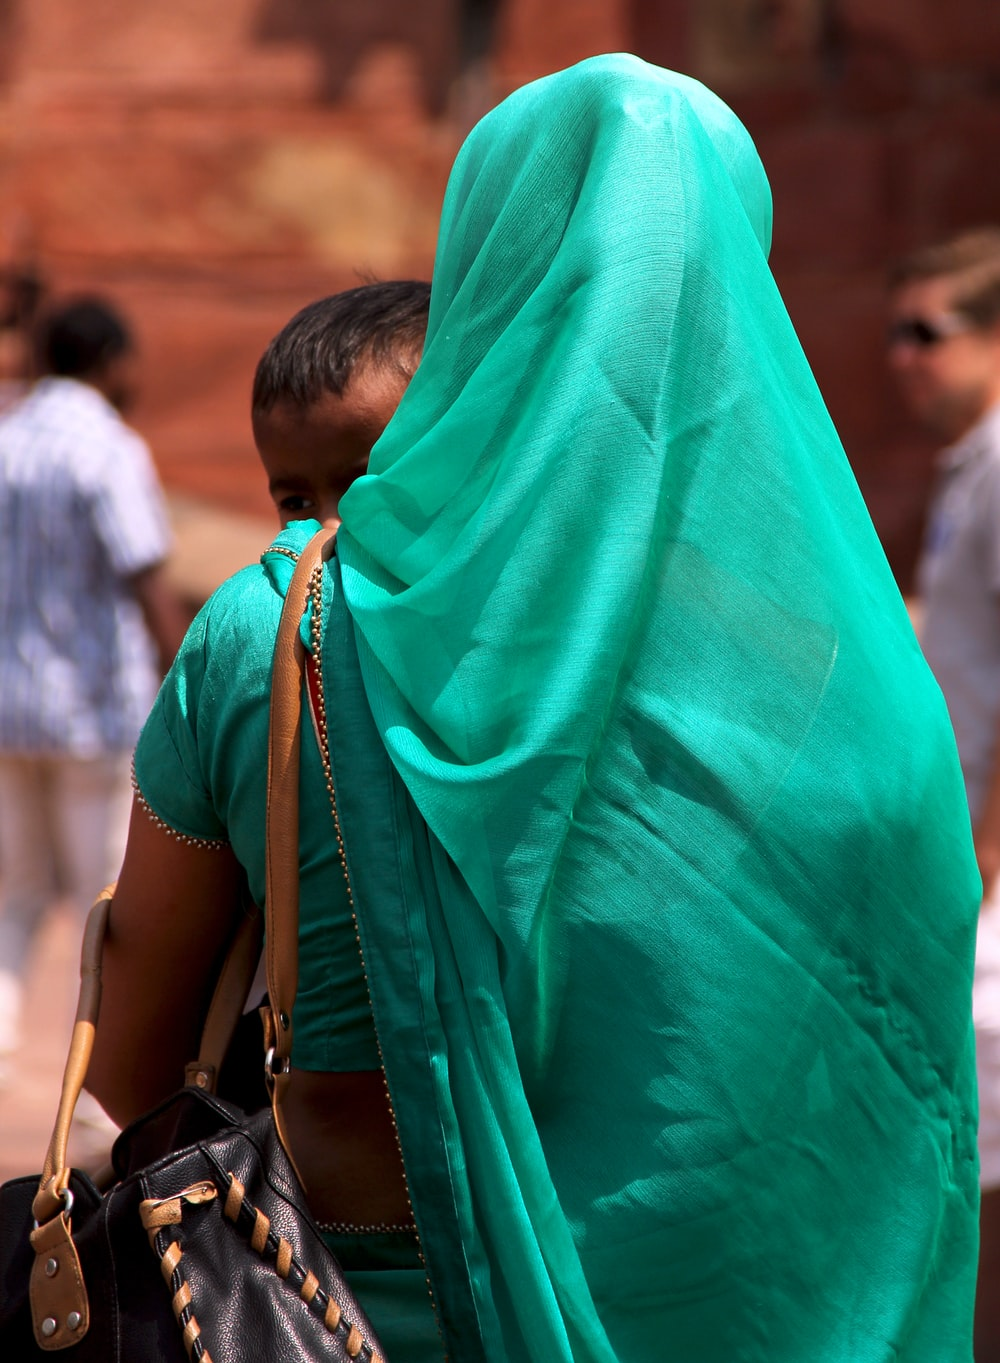 woman in teal hijab standing near people during daytime